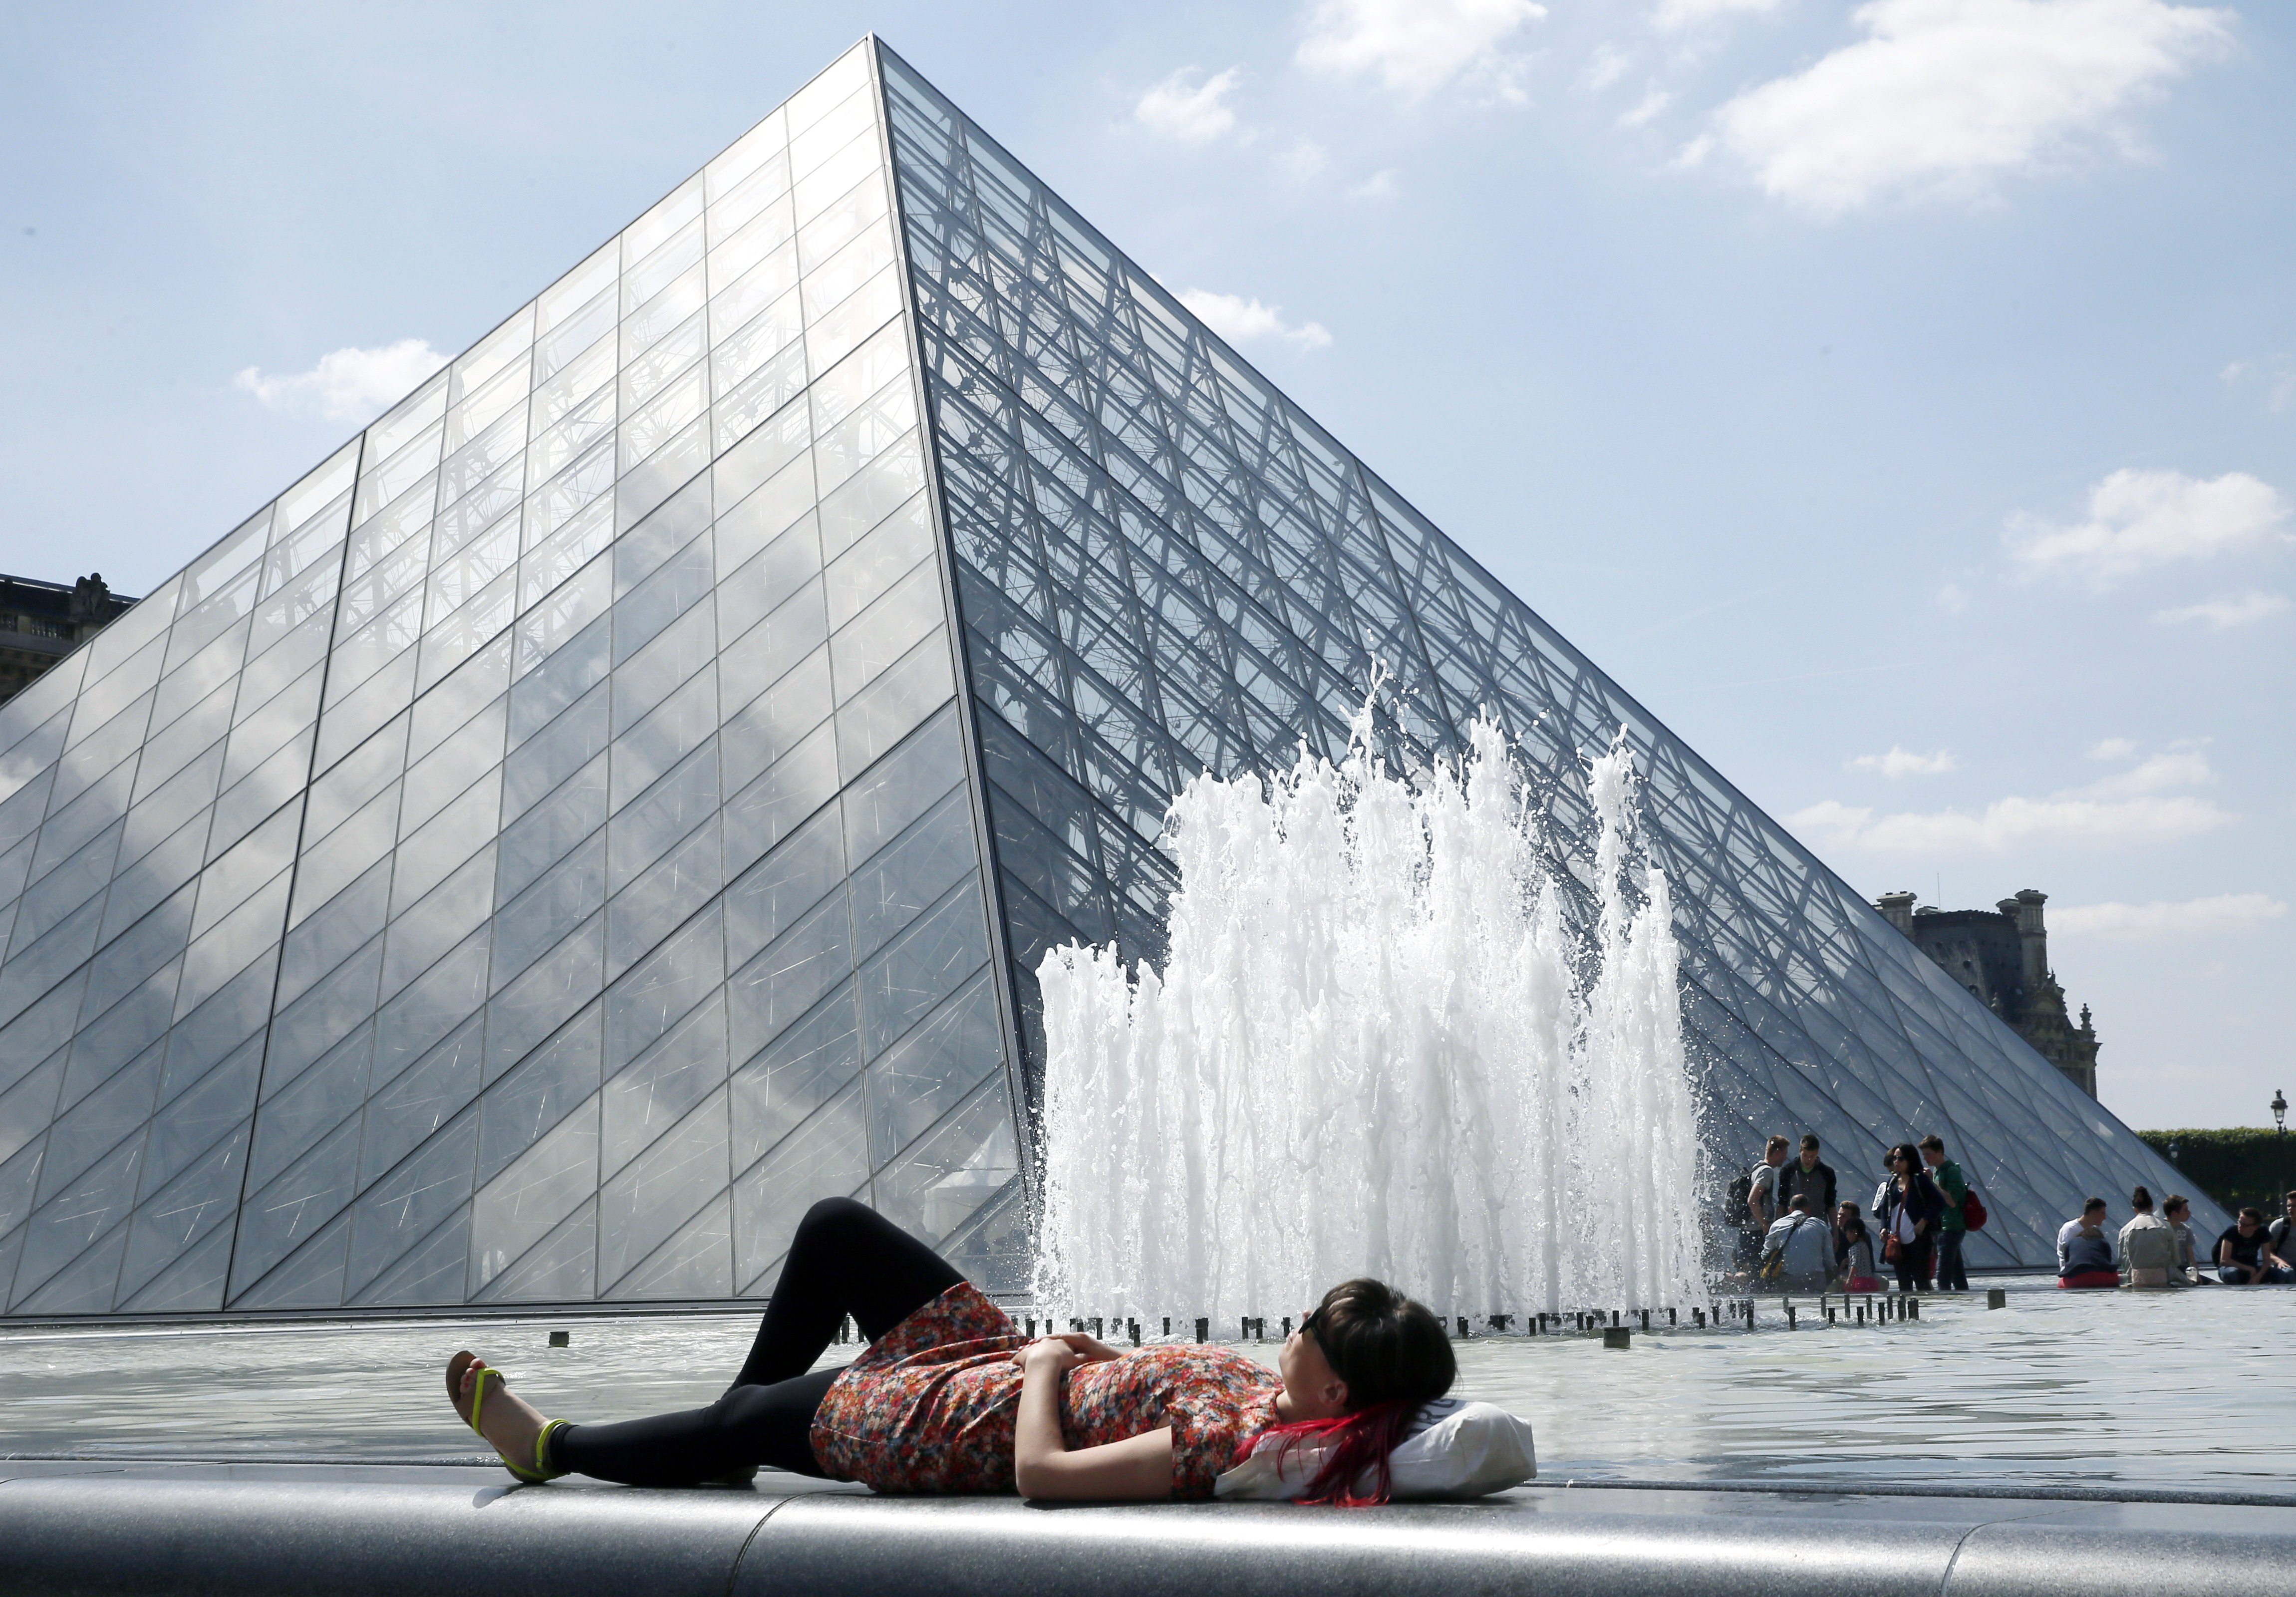 A woman enjoys the sunny weather near the Louvre Museum pyramid in Paris on May 16, 2014.